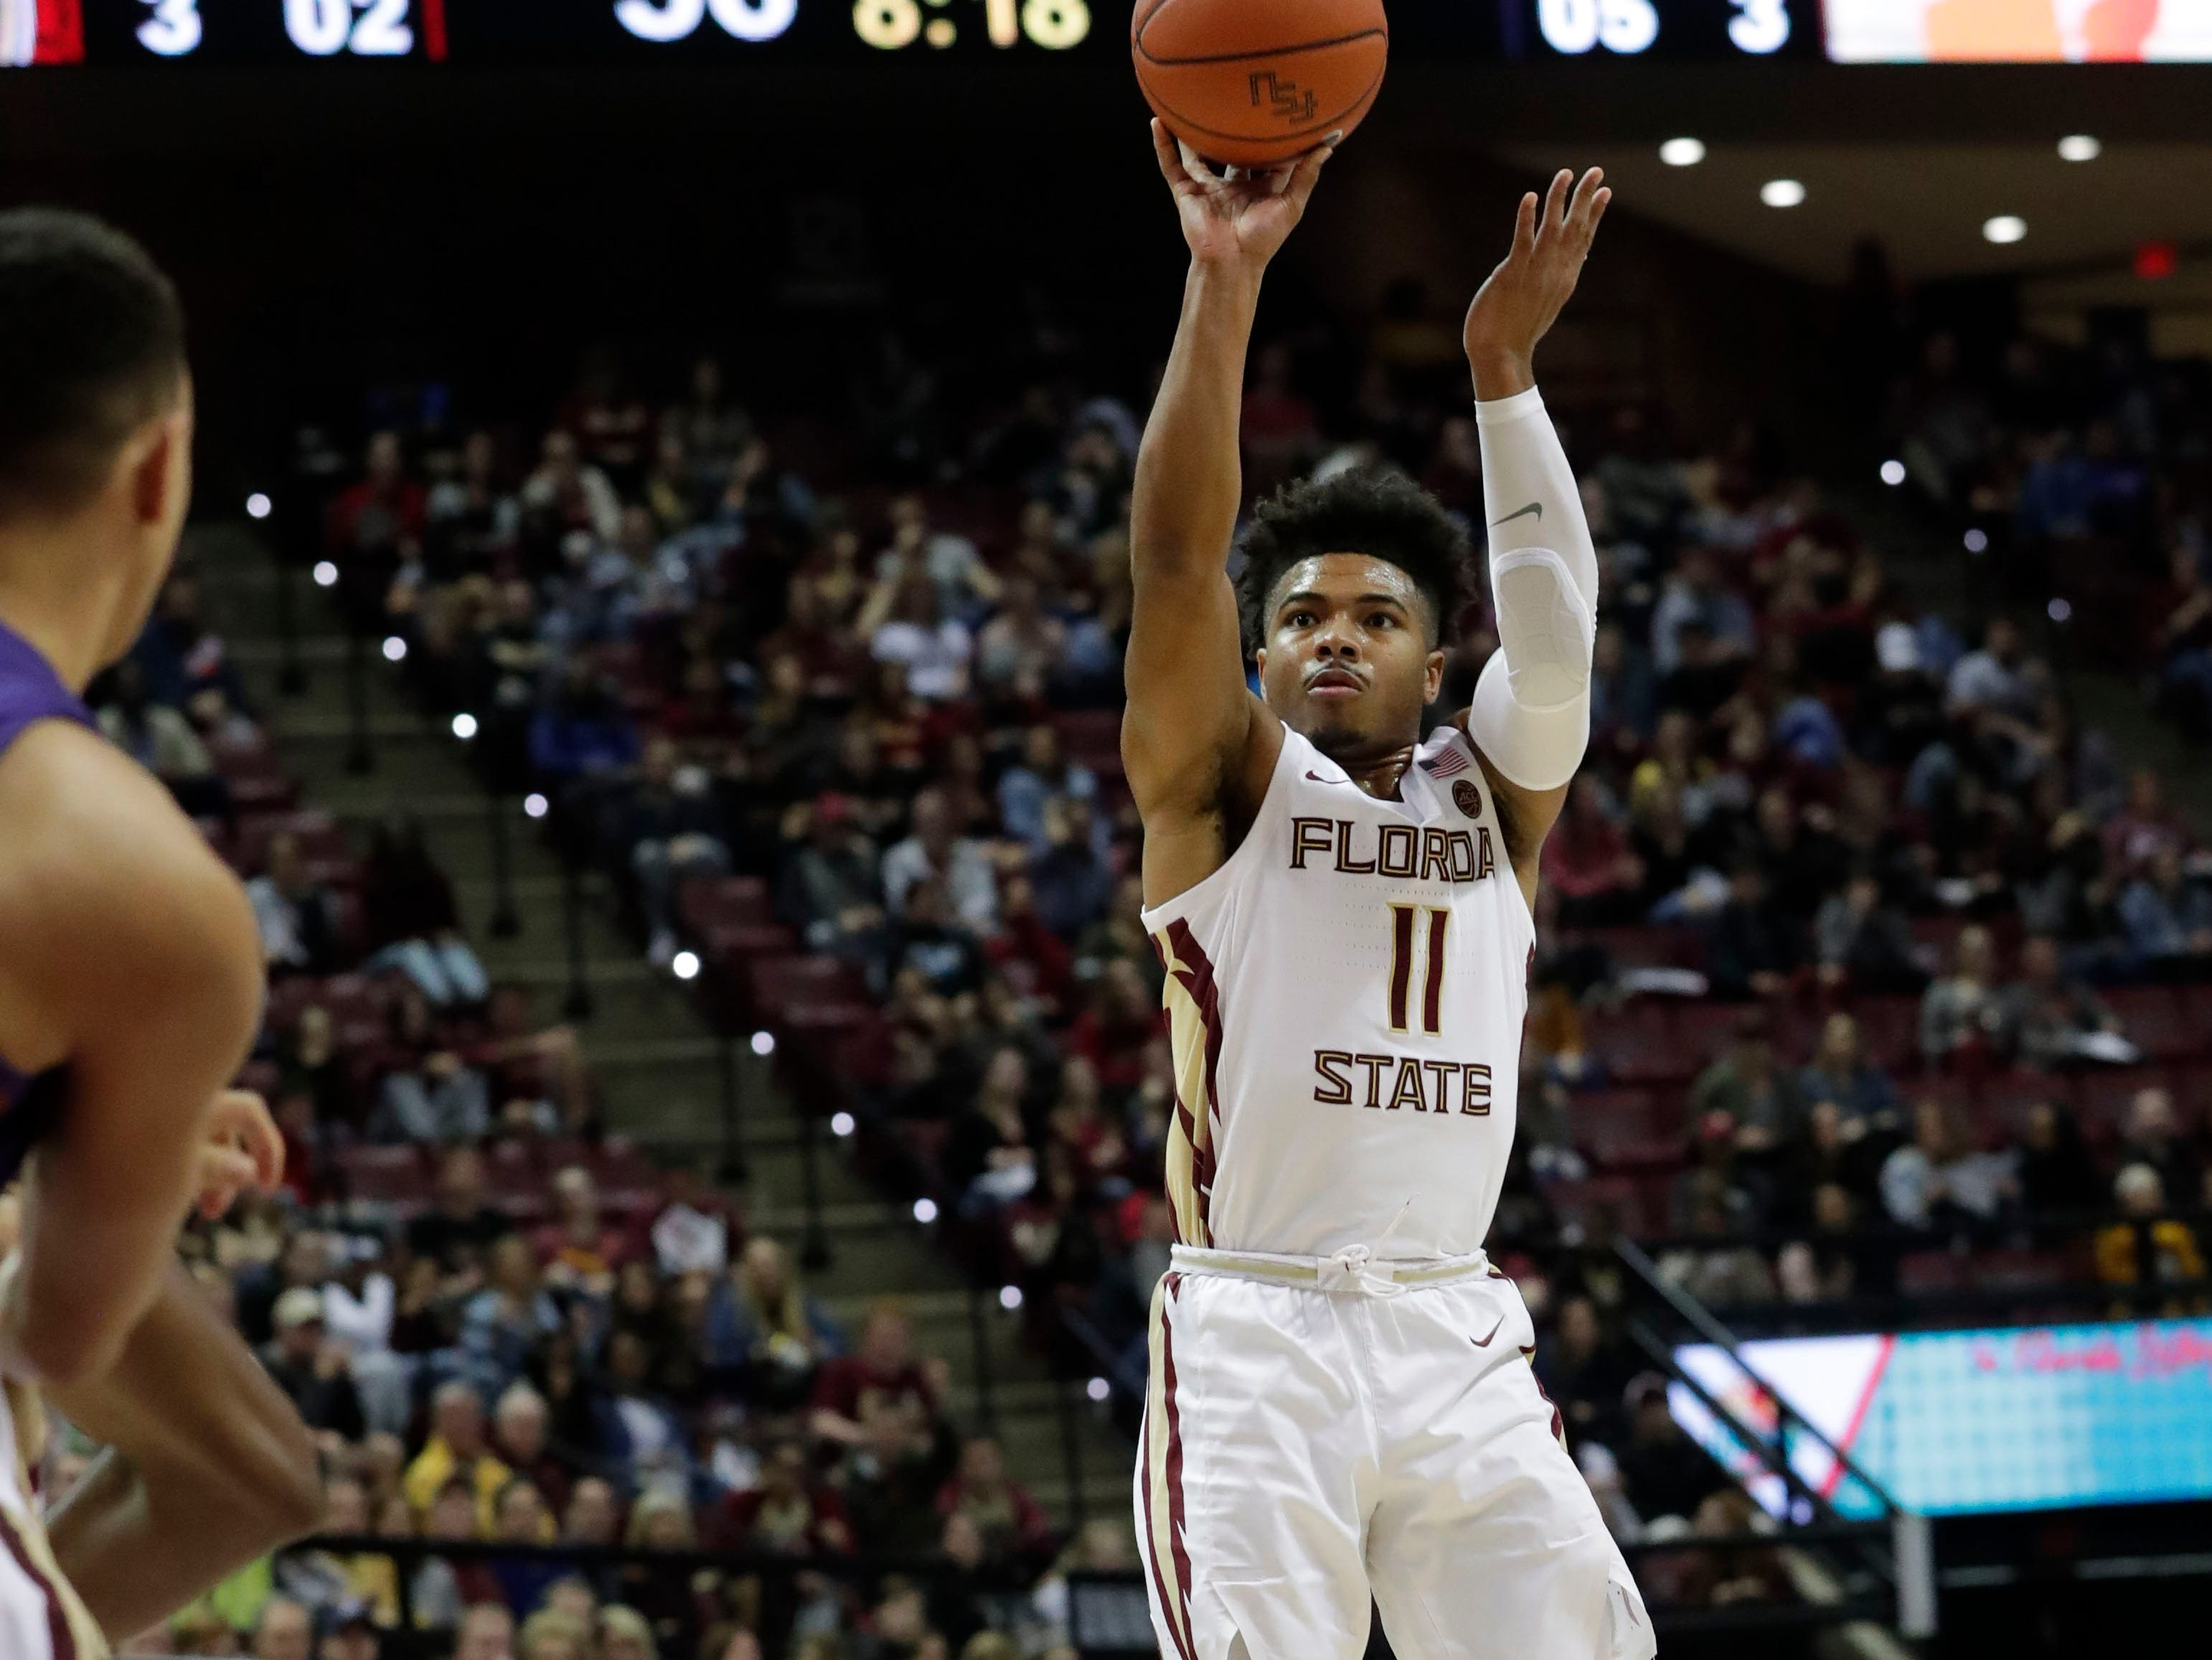 Florida State Seminoles guard David Nichols (11) shoots for two. The Florida State Seminoles face off against the Clemson Tigers at the Tucker Civic Center, Tuesday, Jan. 22, 2019.